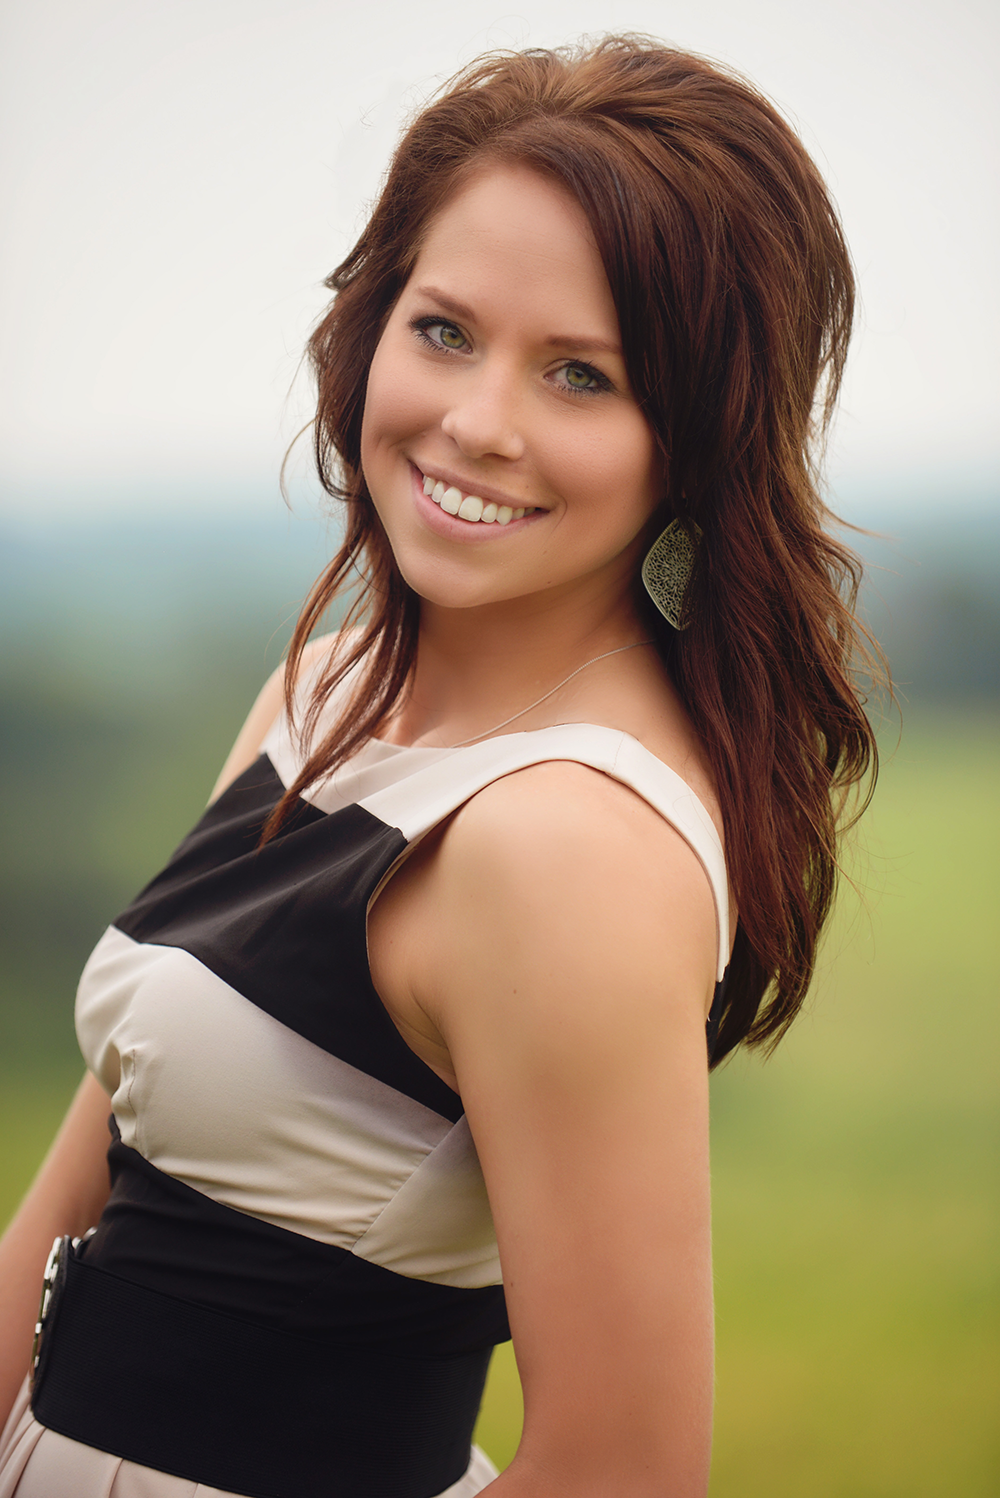 outdoor womens professional headshot